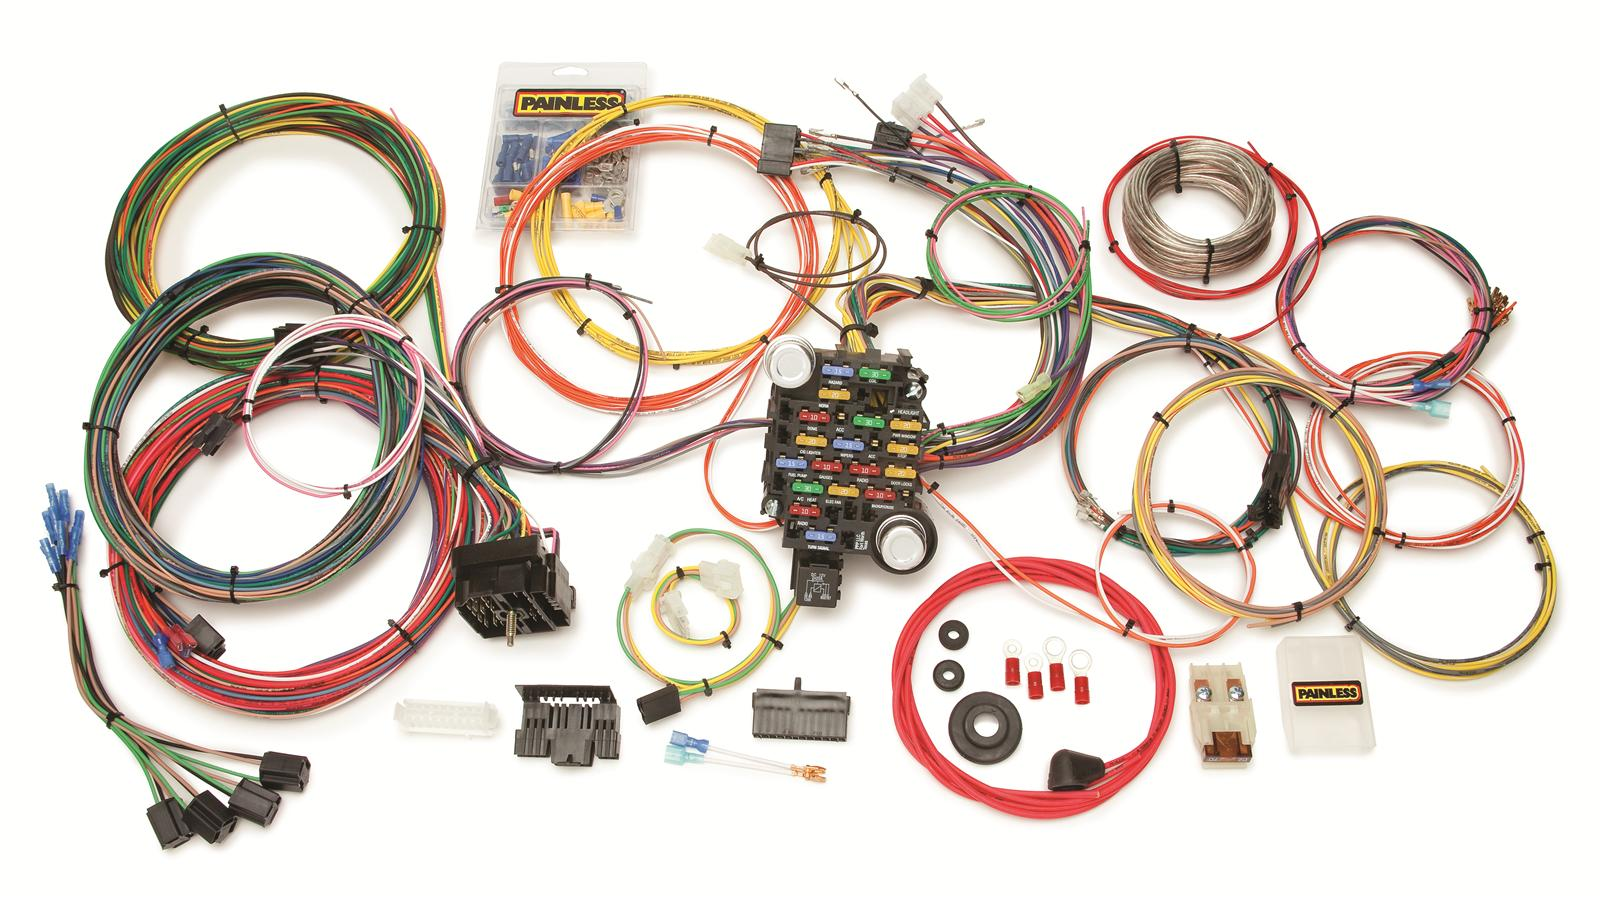 1968 Camaro Fuel Gauge Wiring Diagram Painless Performance Gmc Chevy Truck Harnesses 10205